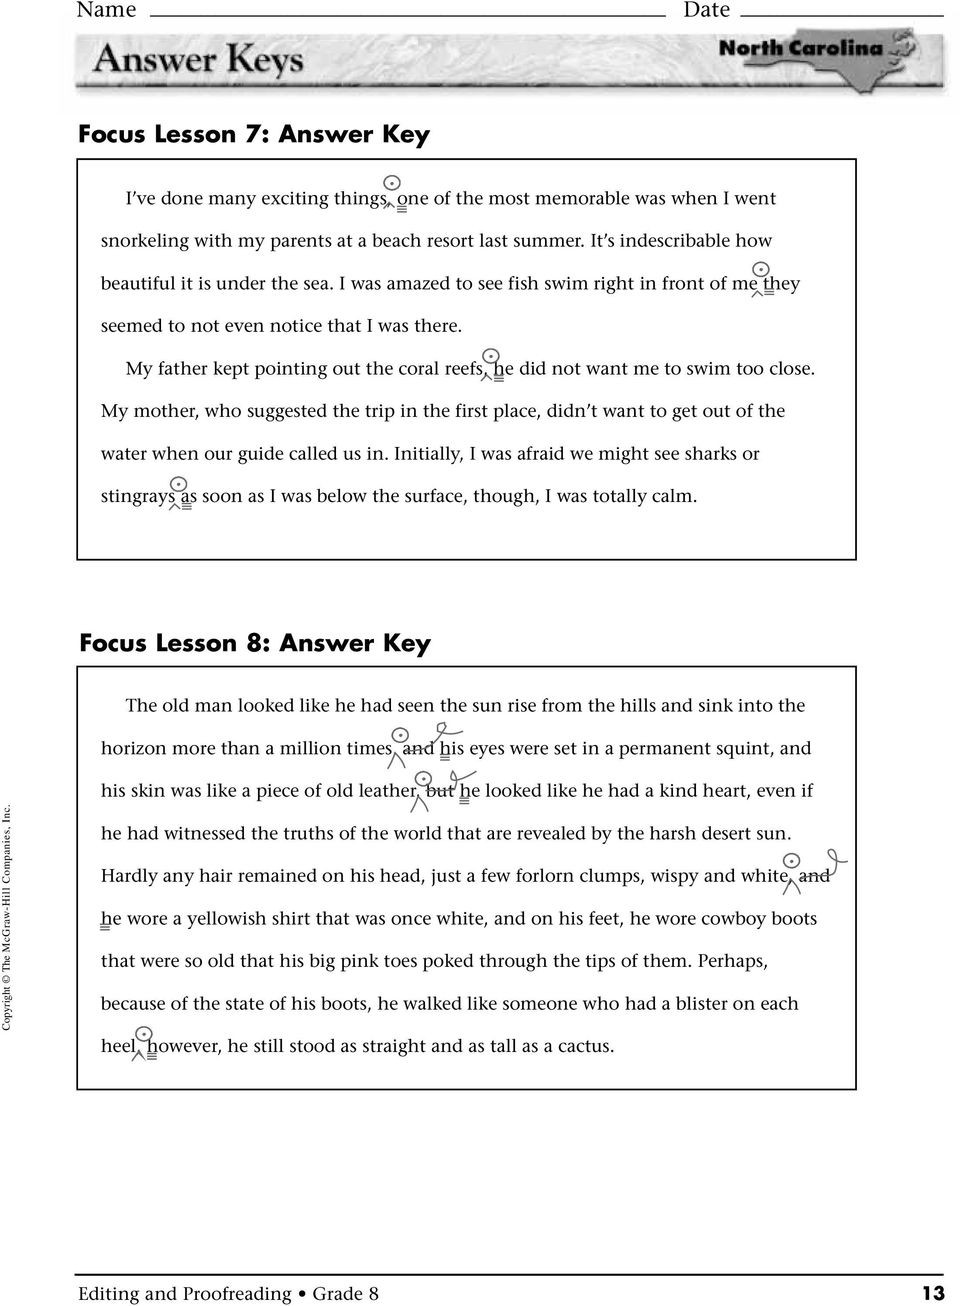 Proofreading Worksheets High School Editing and Proofreading Pdf Free Download